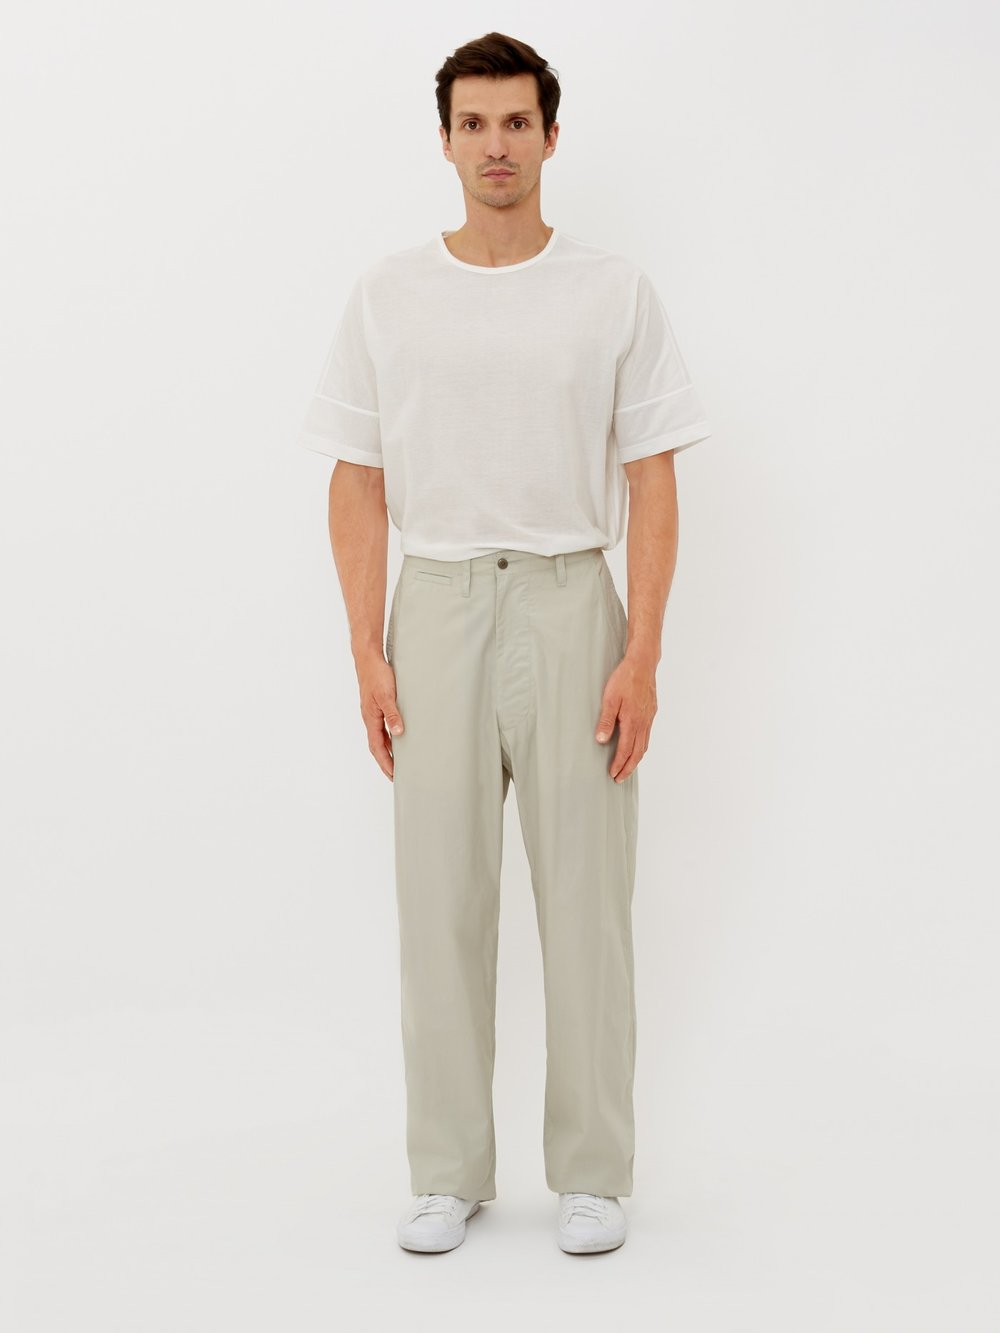 E Tautz field trouser - £230 - The perfect summer trouser, lightweight and with a wide leg